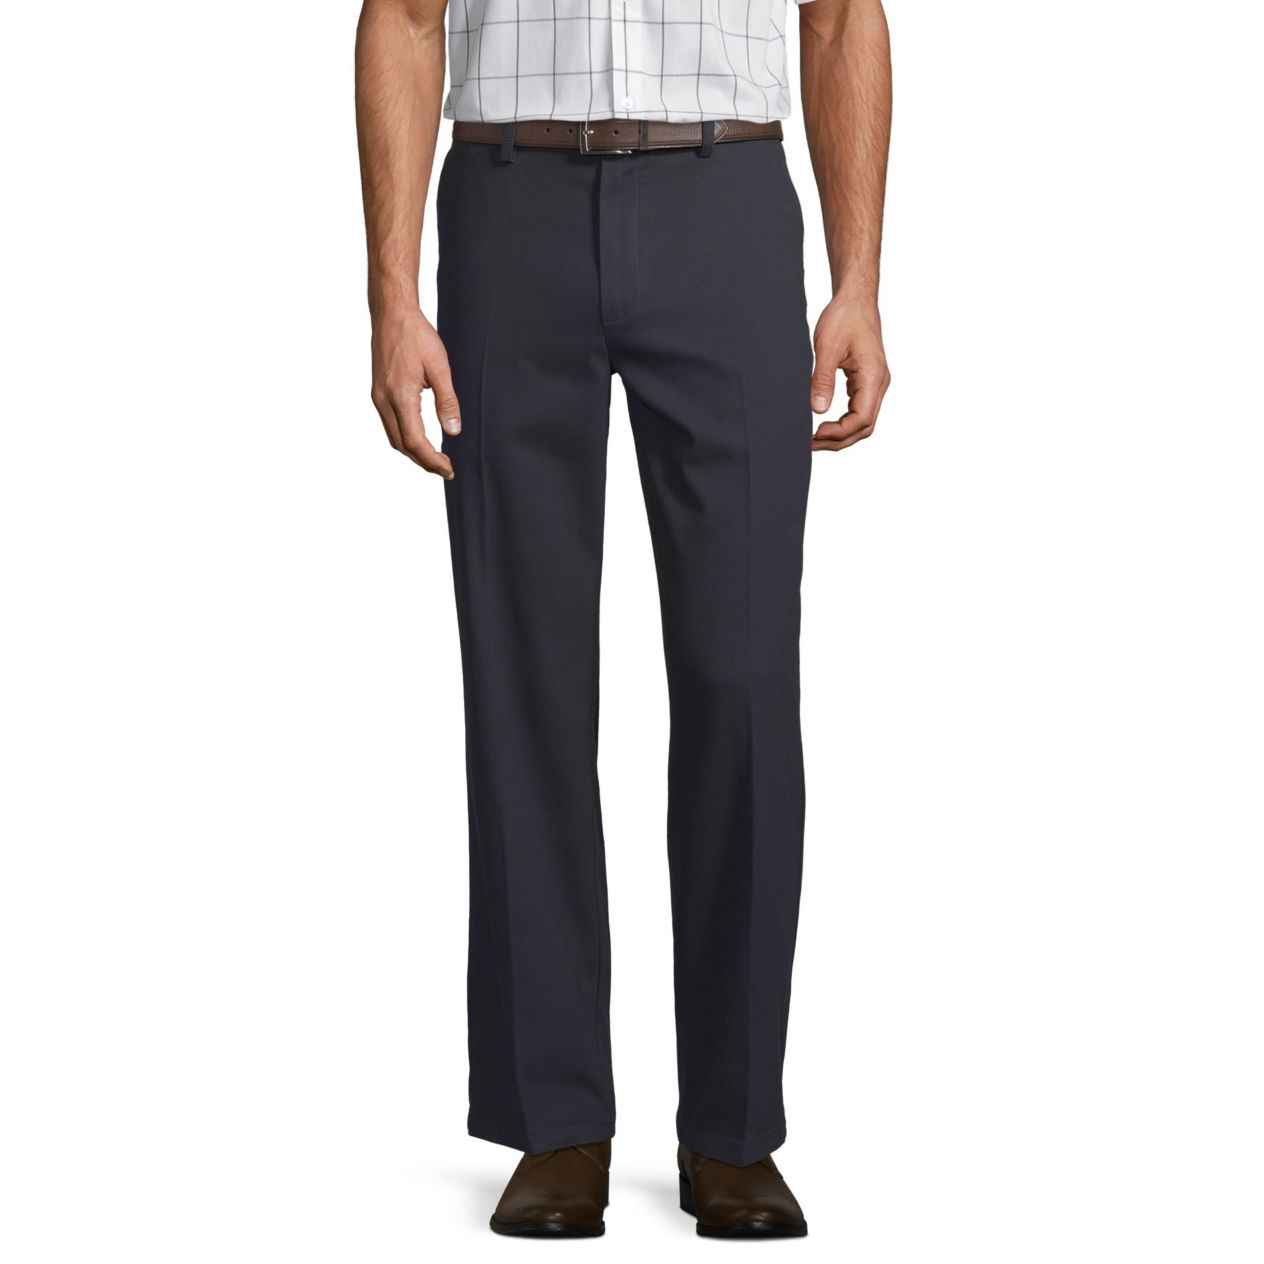 Men's Navy Dress Pants